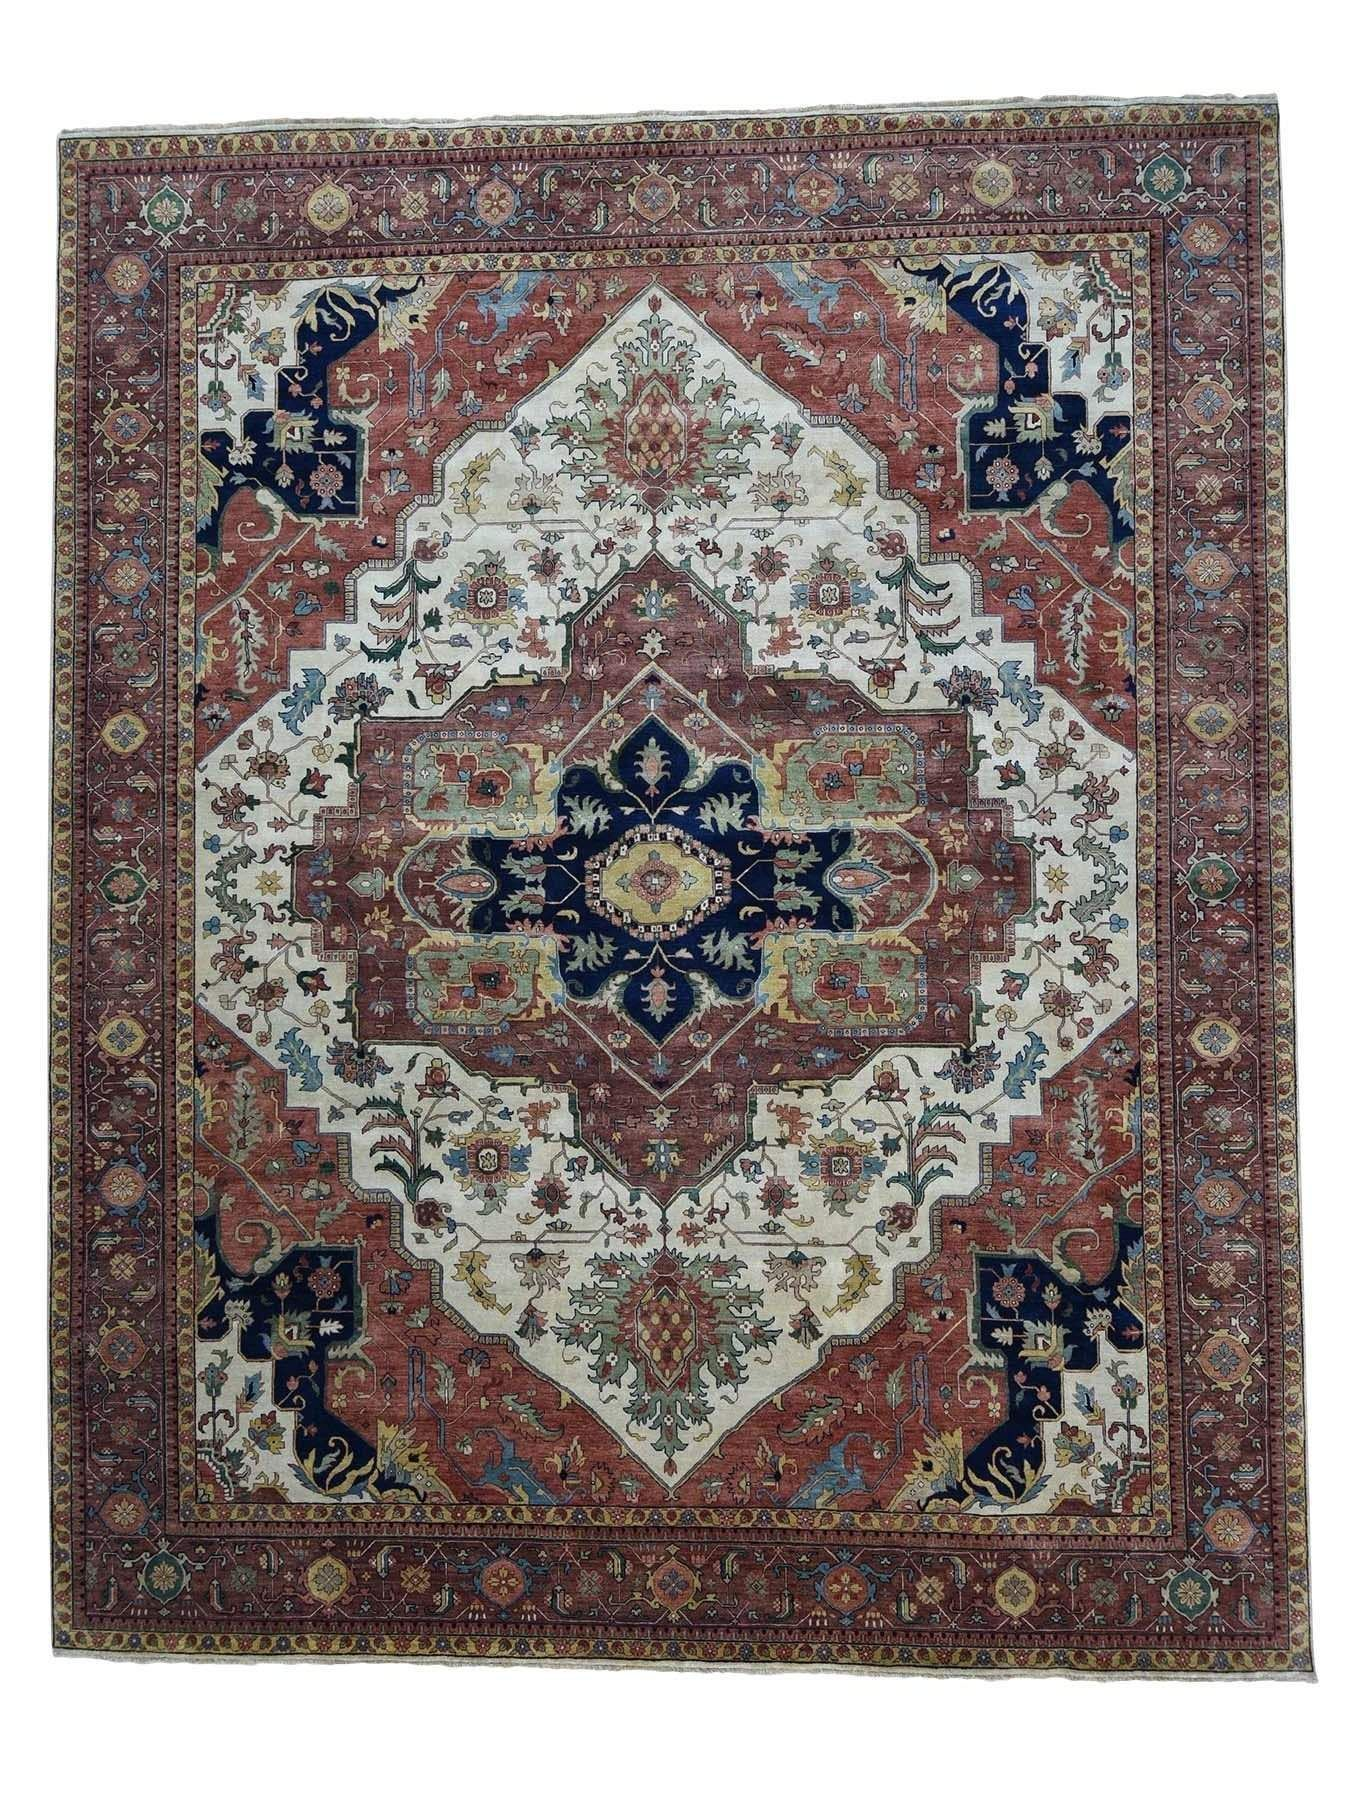 Vintage Wool Rug This Rug Measures 12 2 X 15 2 In Size The Design Is A Vintage Tabriz Hand Knotted Wool Rug T Vintage Wool Rug Wool Rug Colorful Rugs